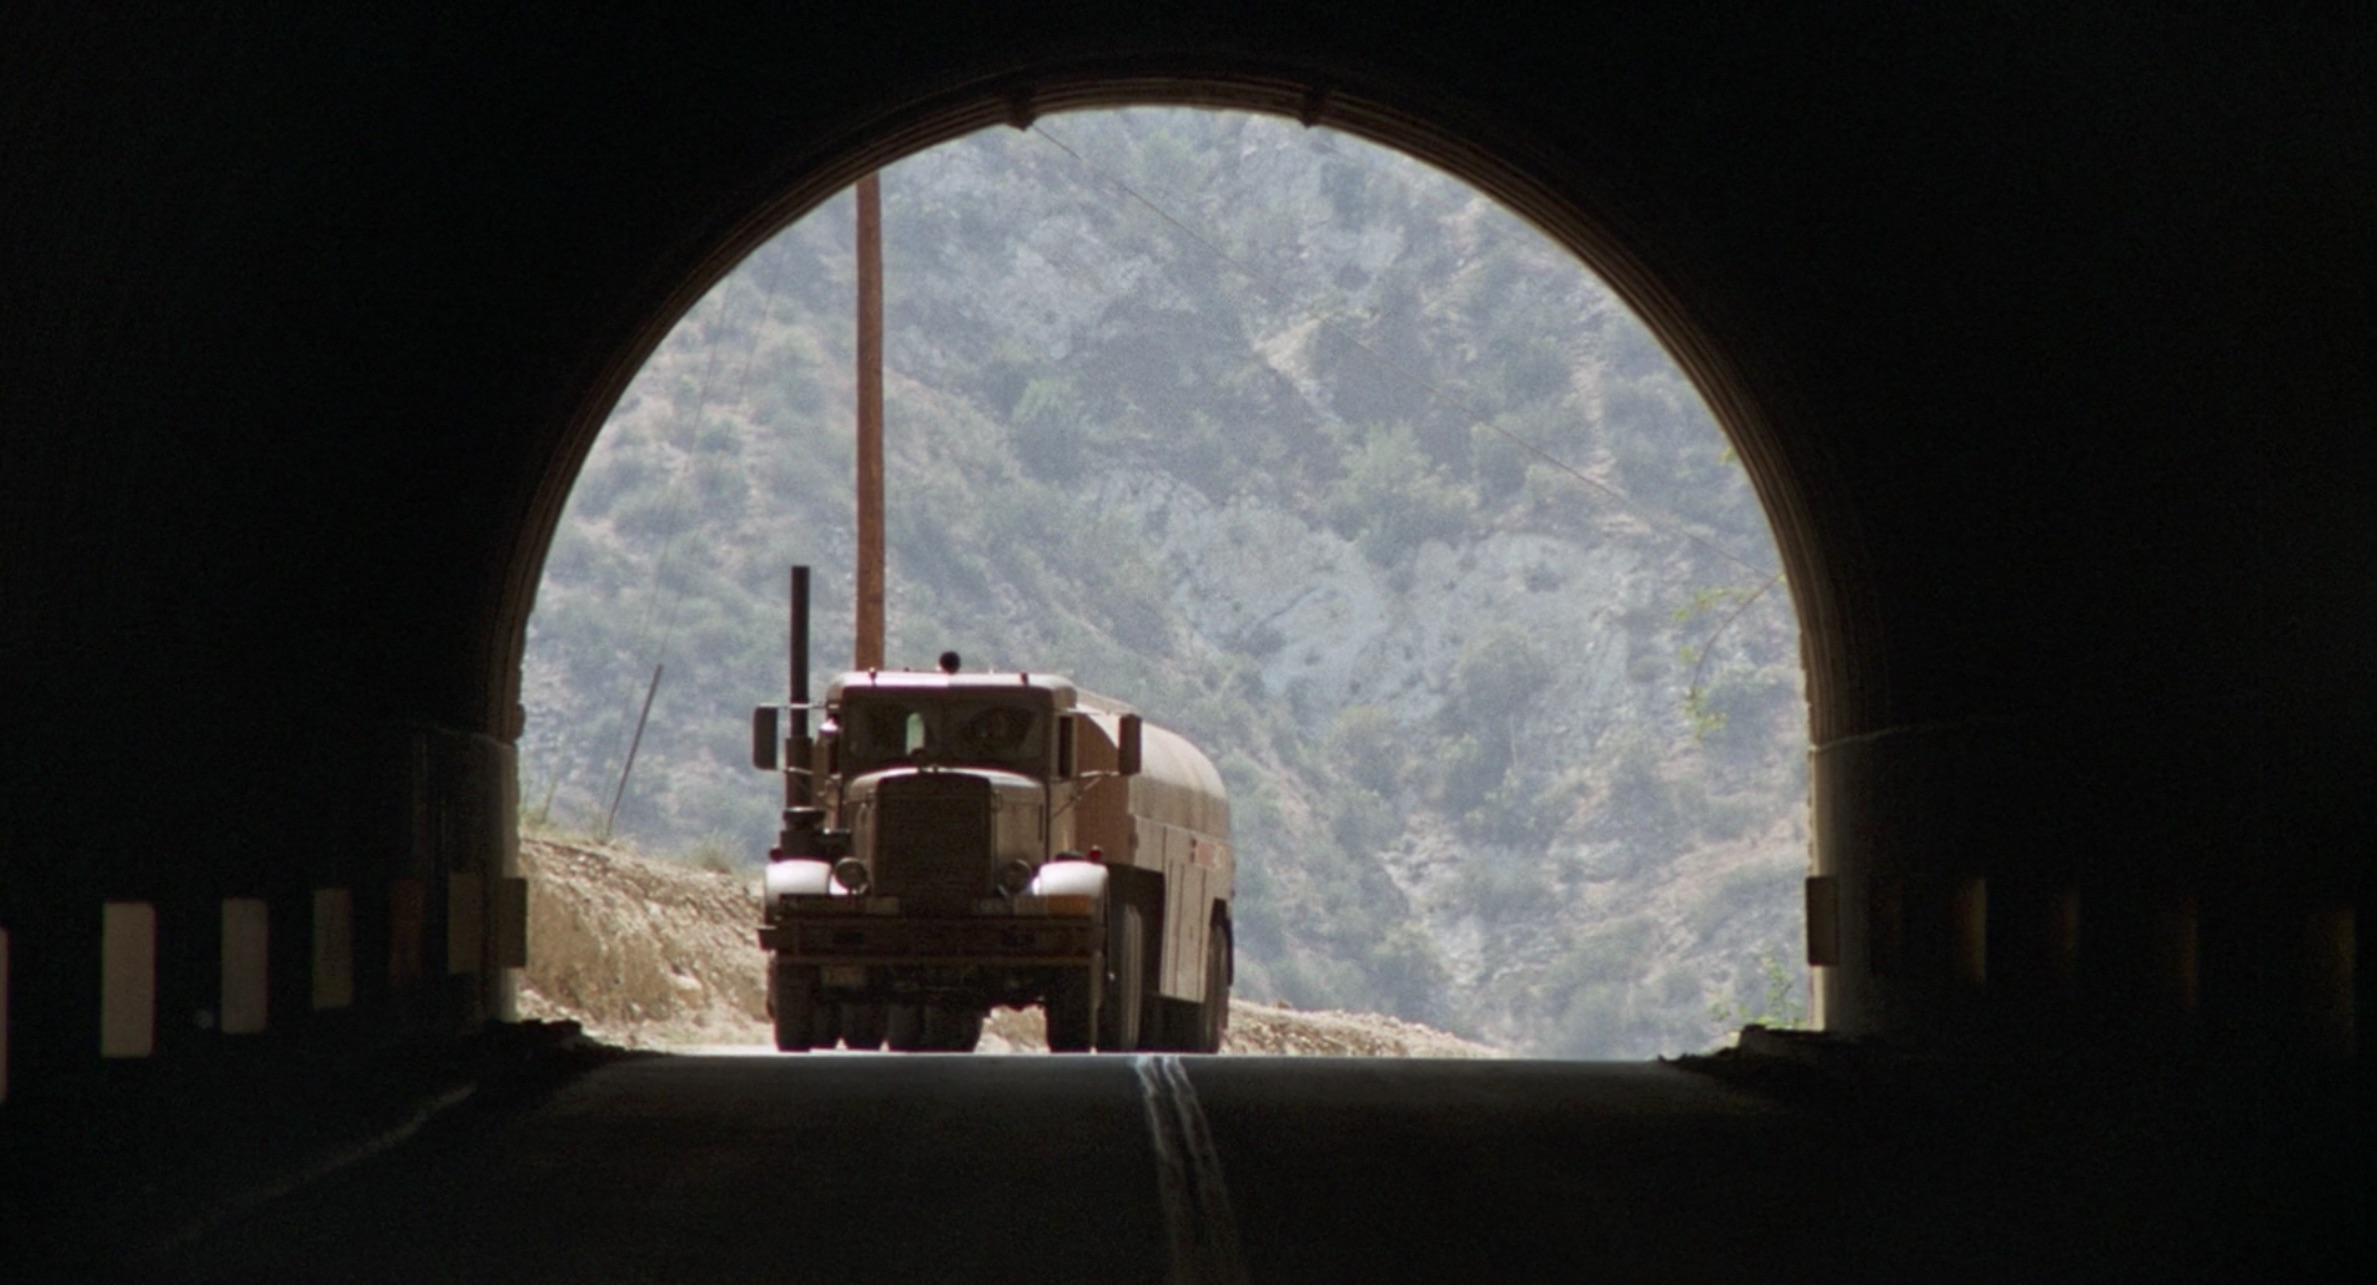 1955 Peterbilt 281 tanker driving through a tunnel